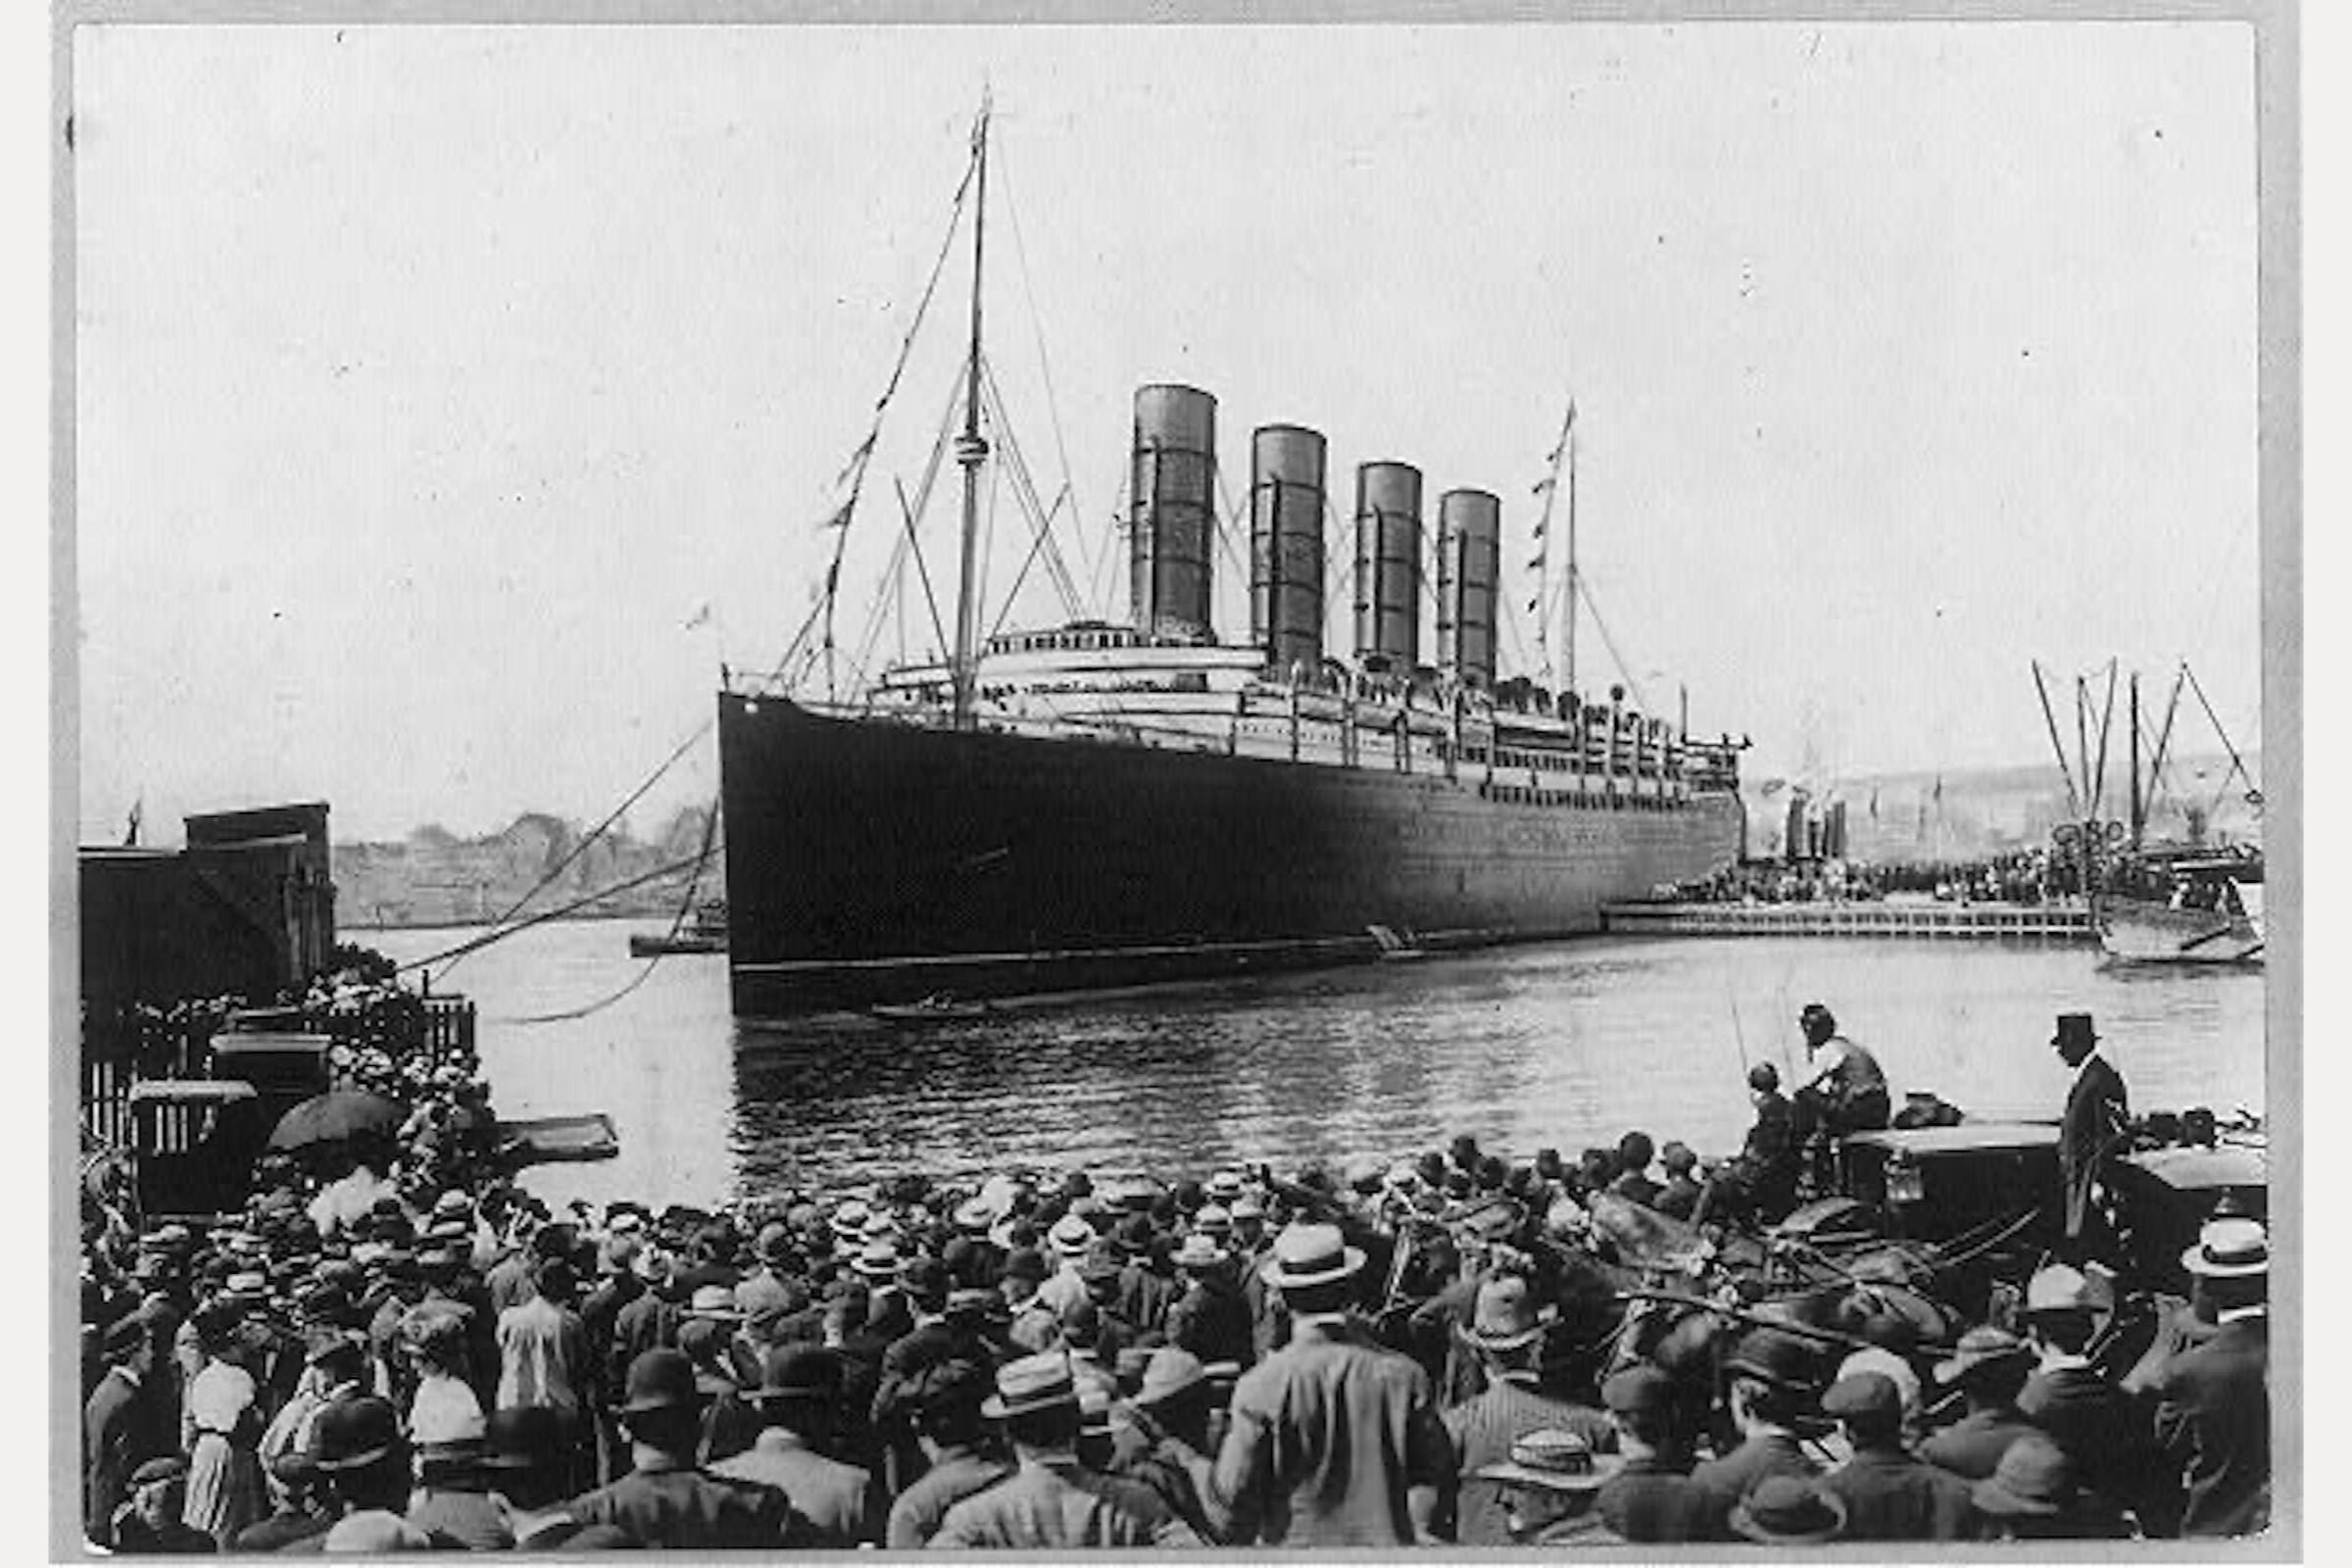 RMS Lusitania coming into pier with spectators in the foreground